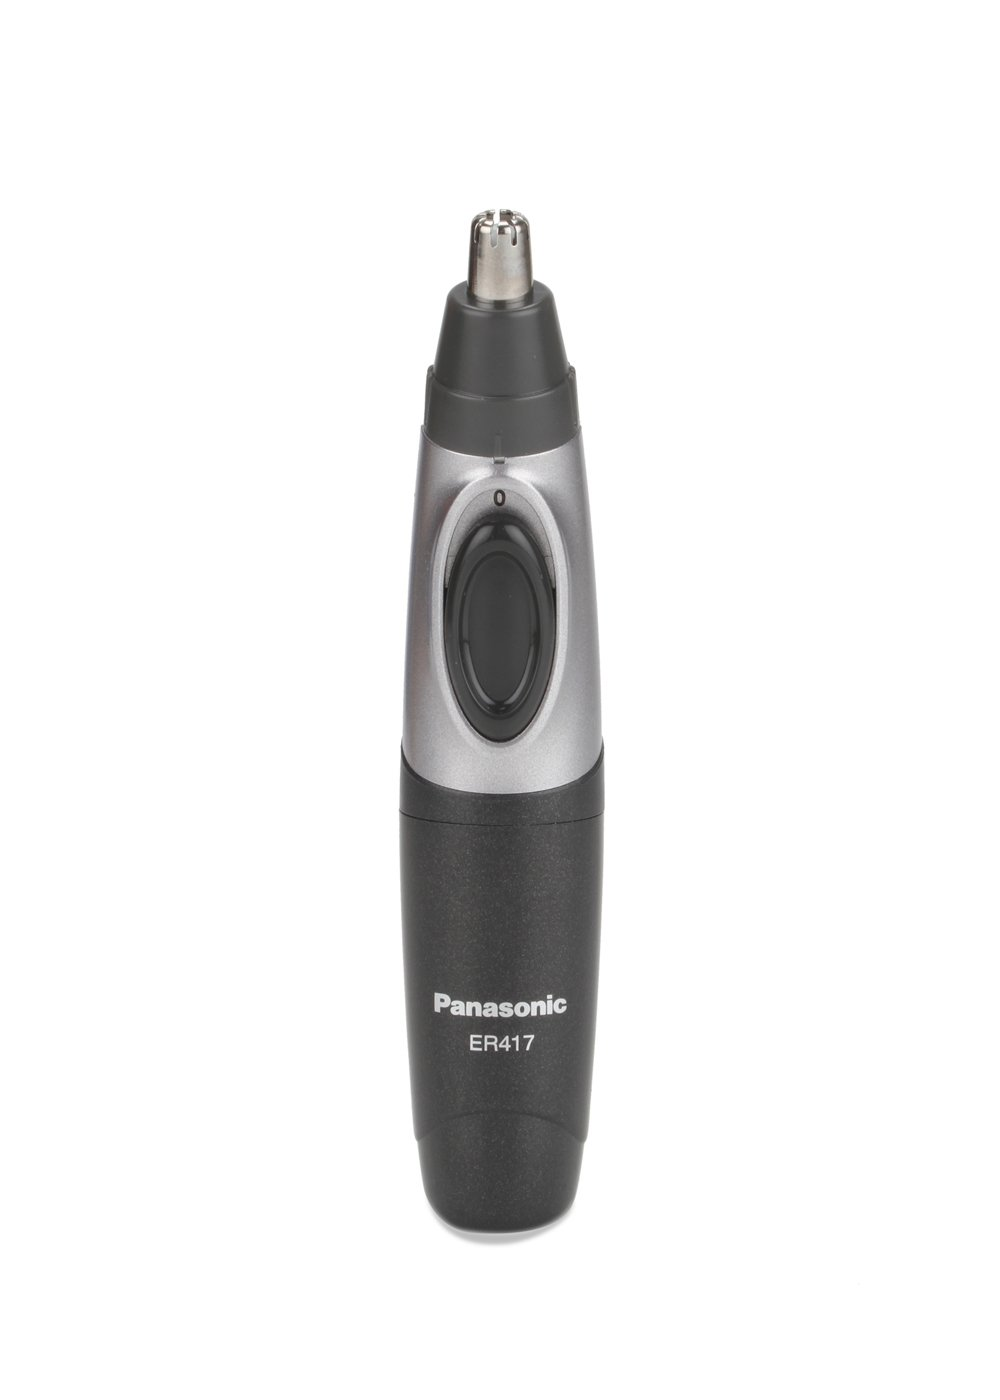 Panasonic ER417K44B Nose and Hair Battery Operated Ergonomic Design Trimmer